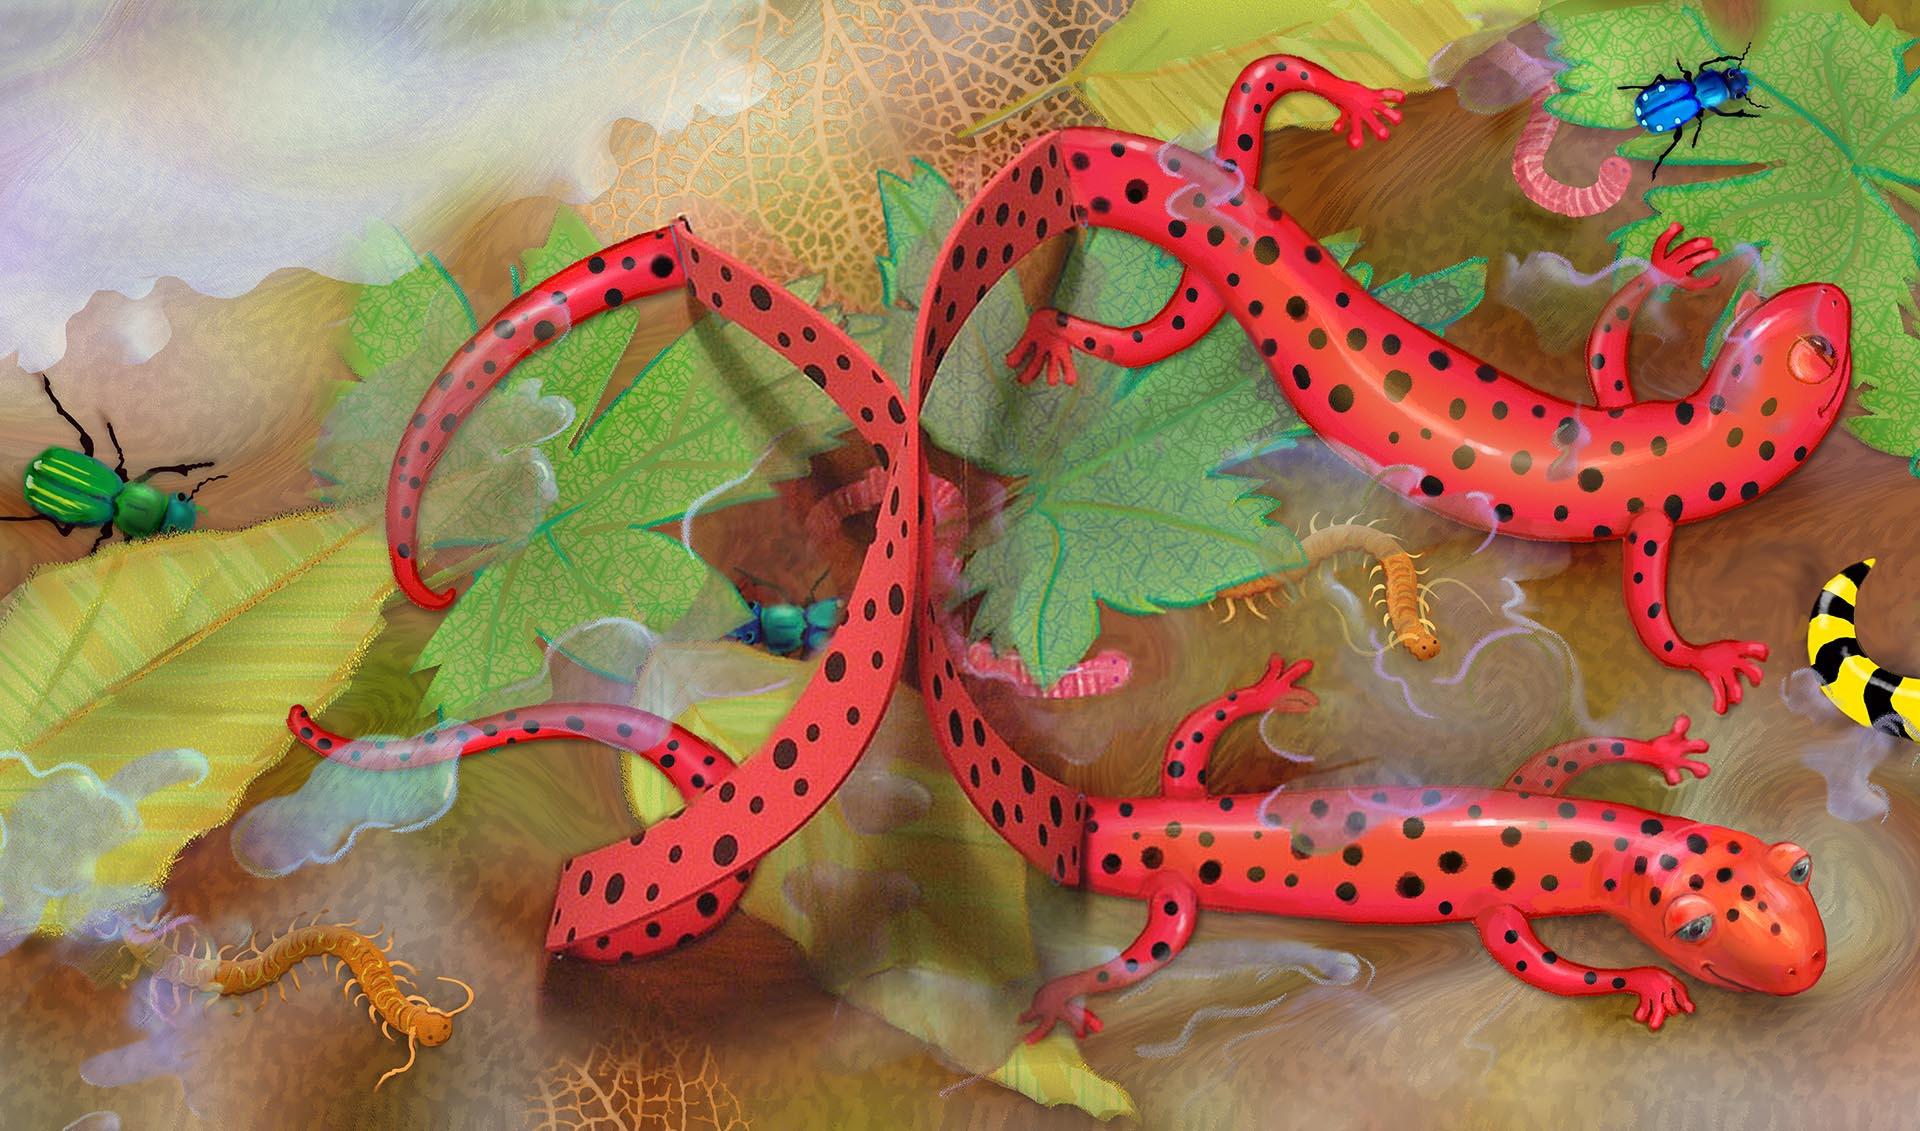 Salamander Rock Storybook Art illustrated by Karen Viola